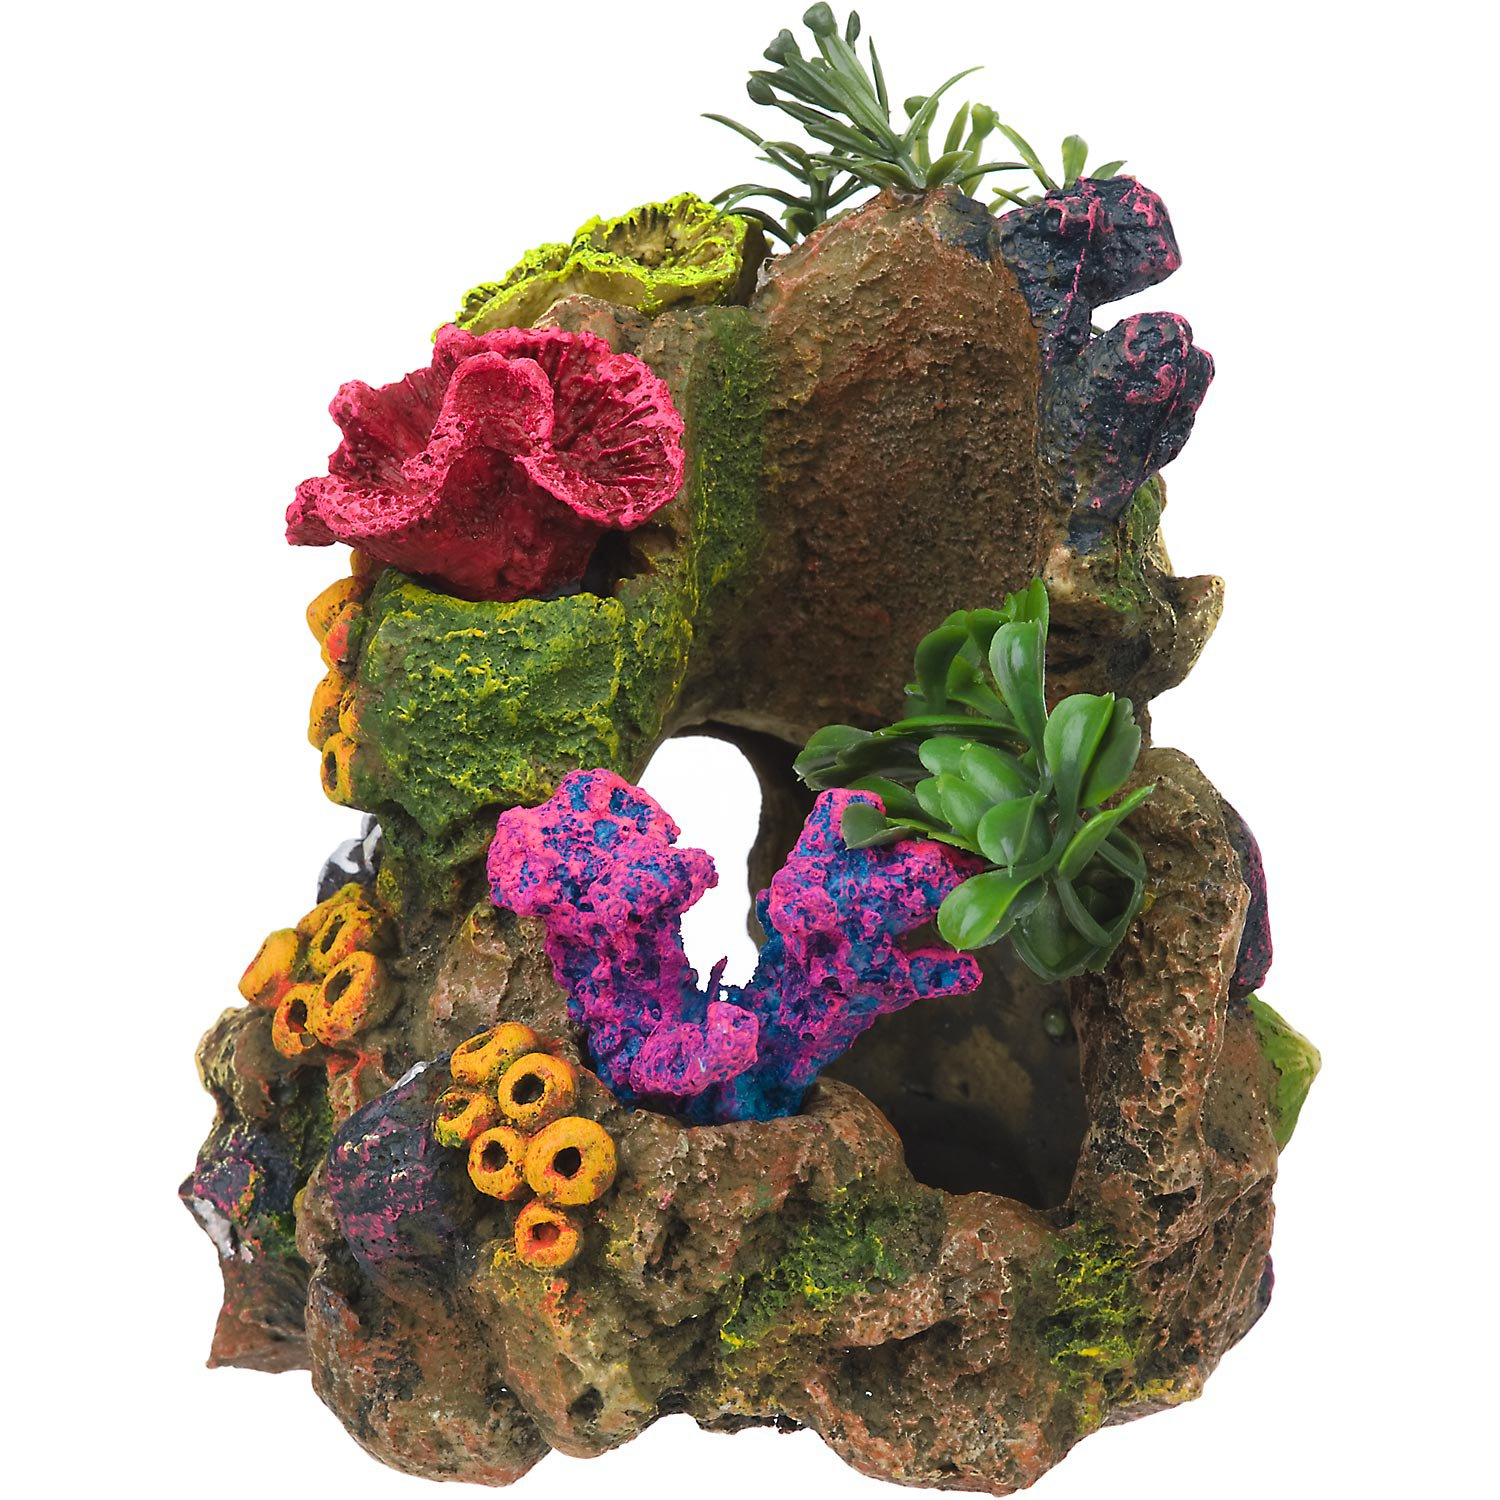 Rockgarden resin aquarium coral garden petco for Aquarium decoration design